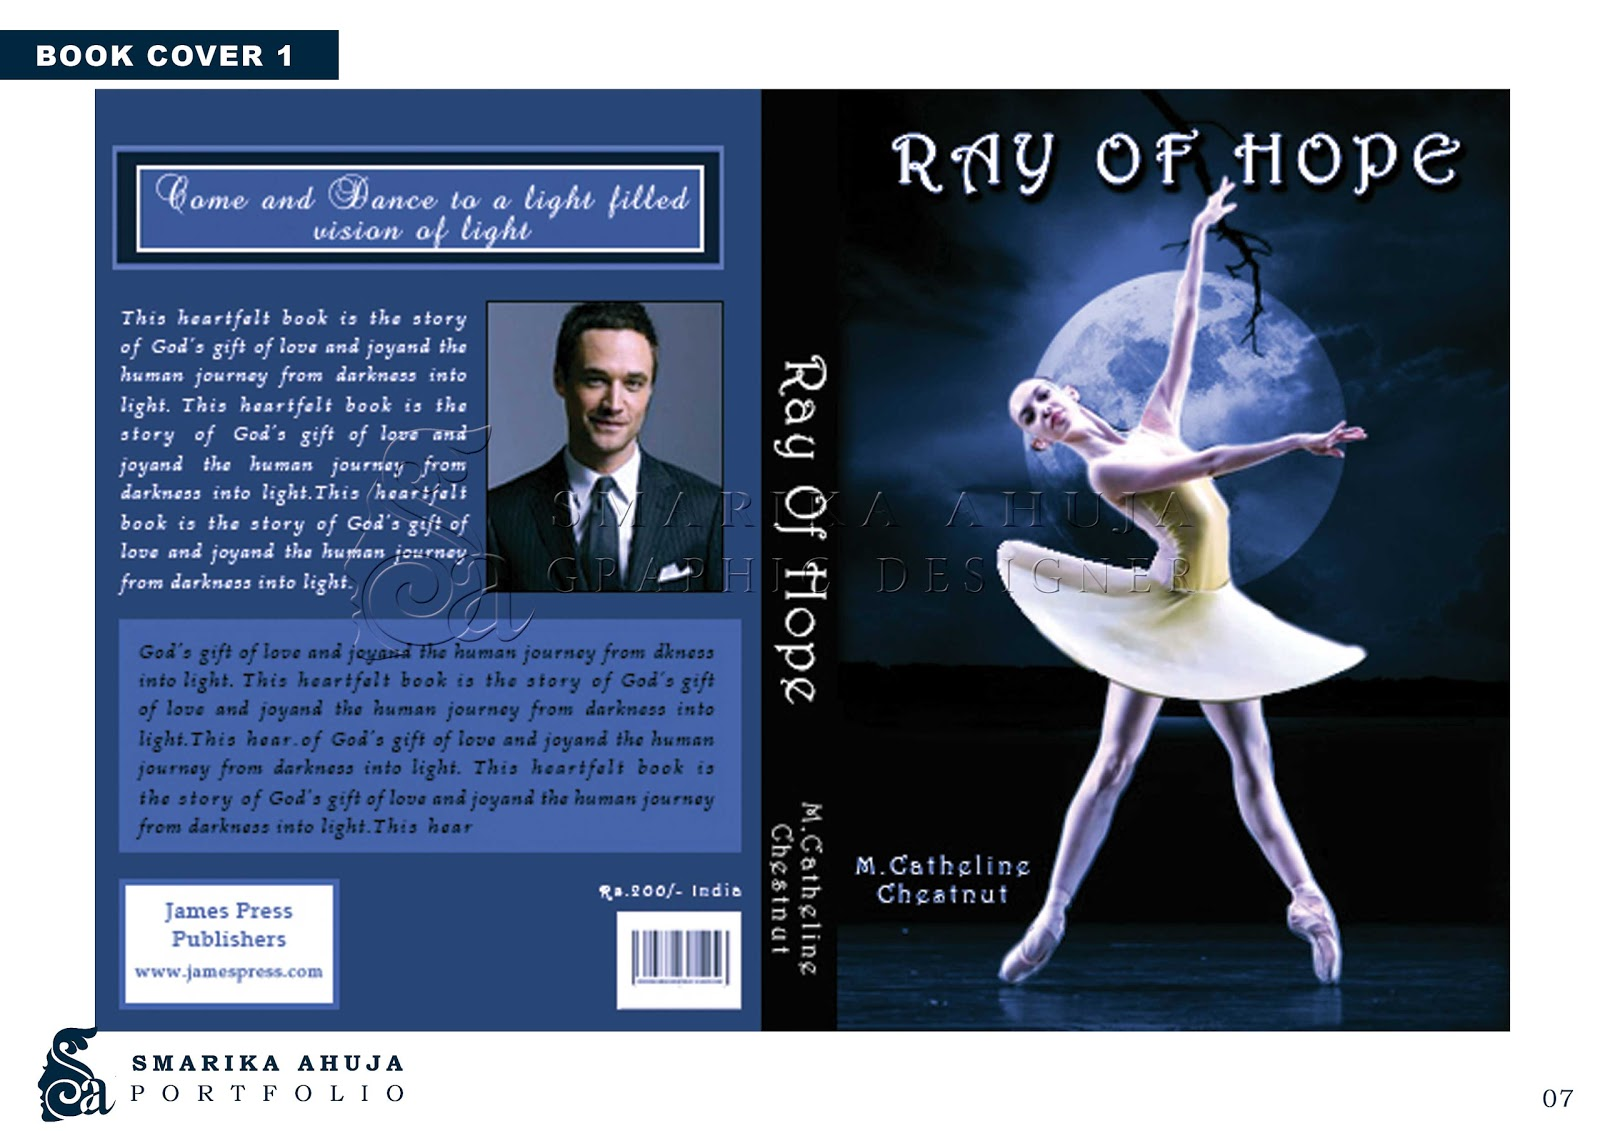 Book Jacket Cover Design : Smarika s graphic design portfolio book cover designs